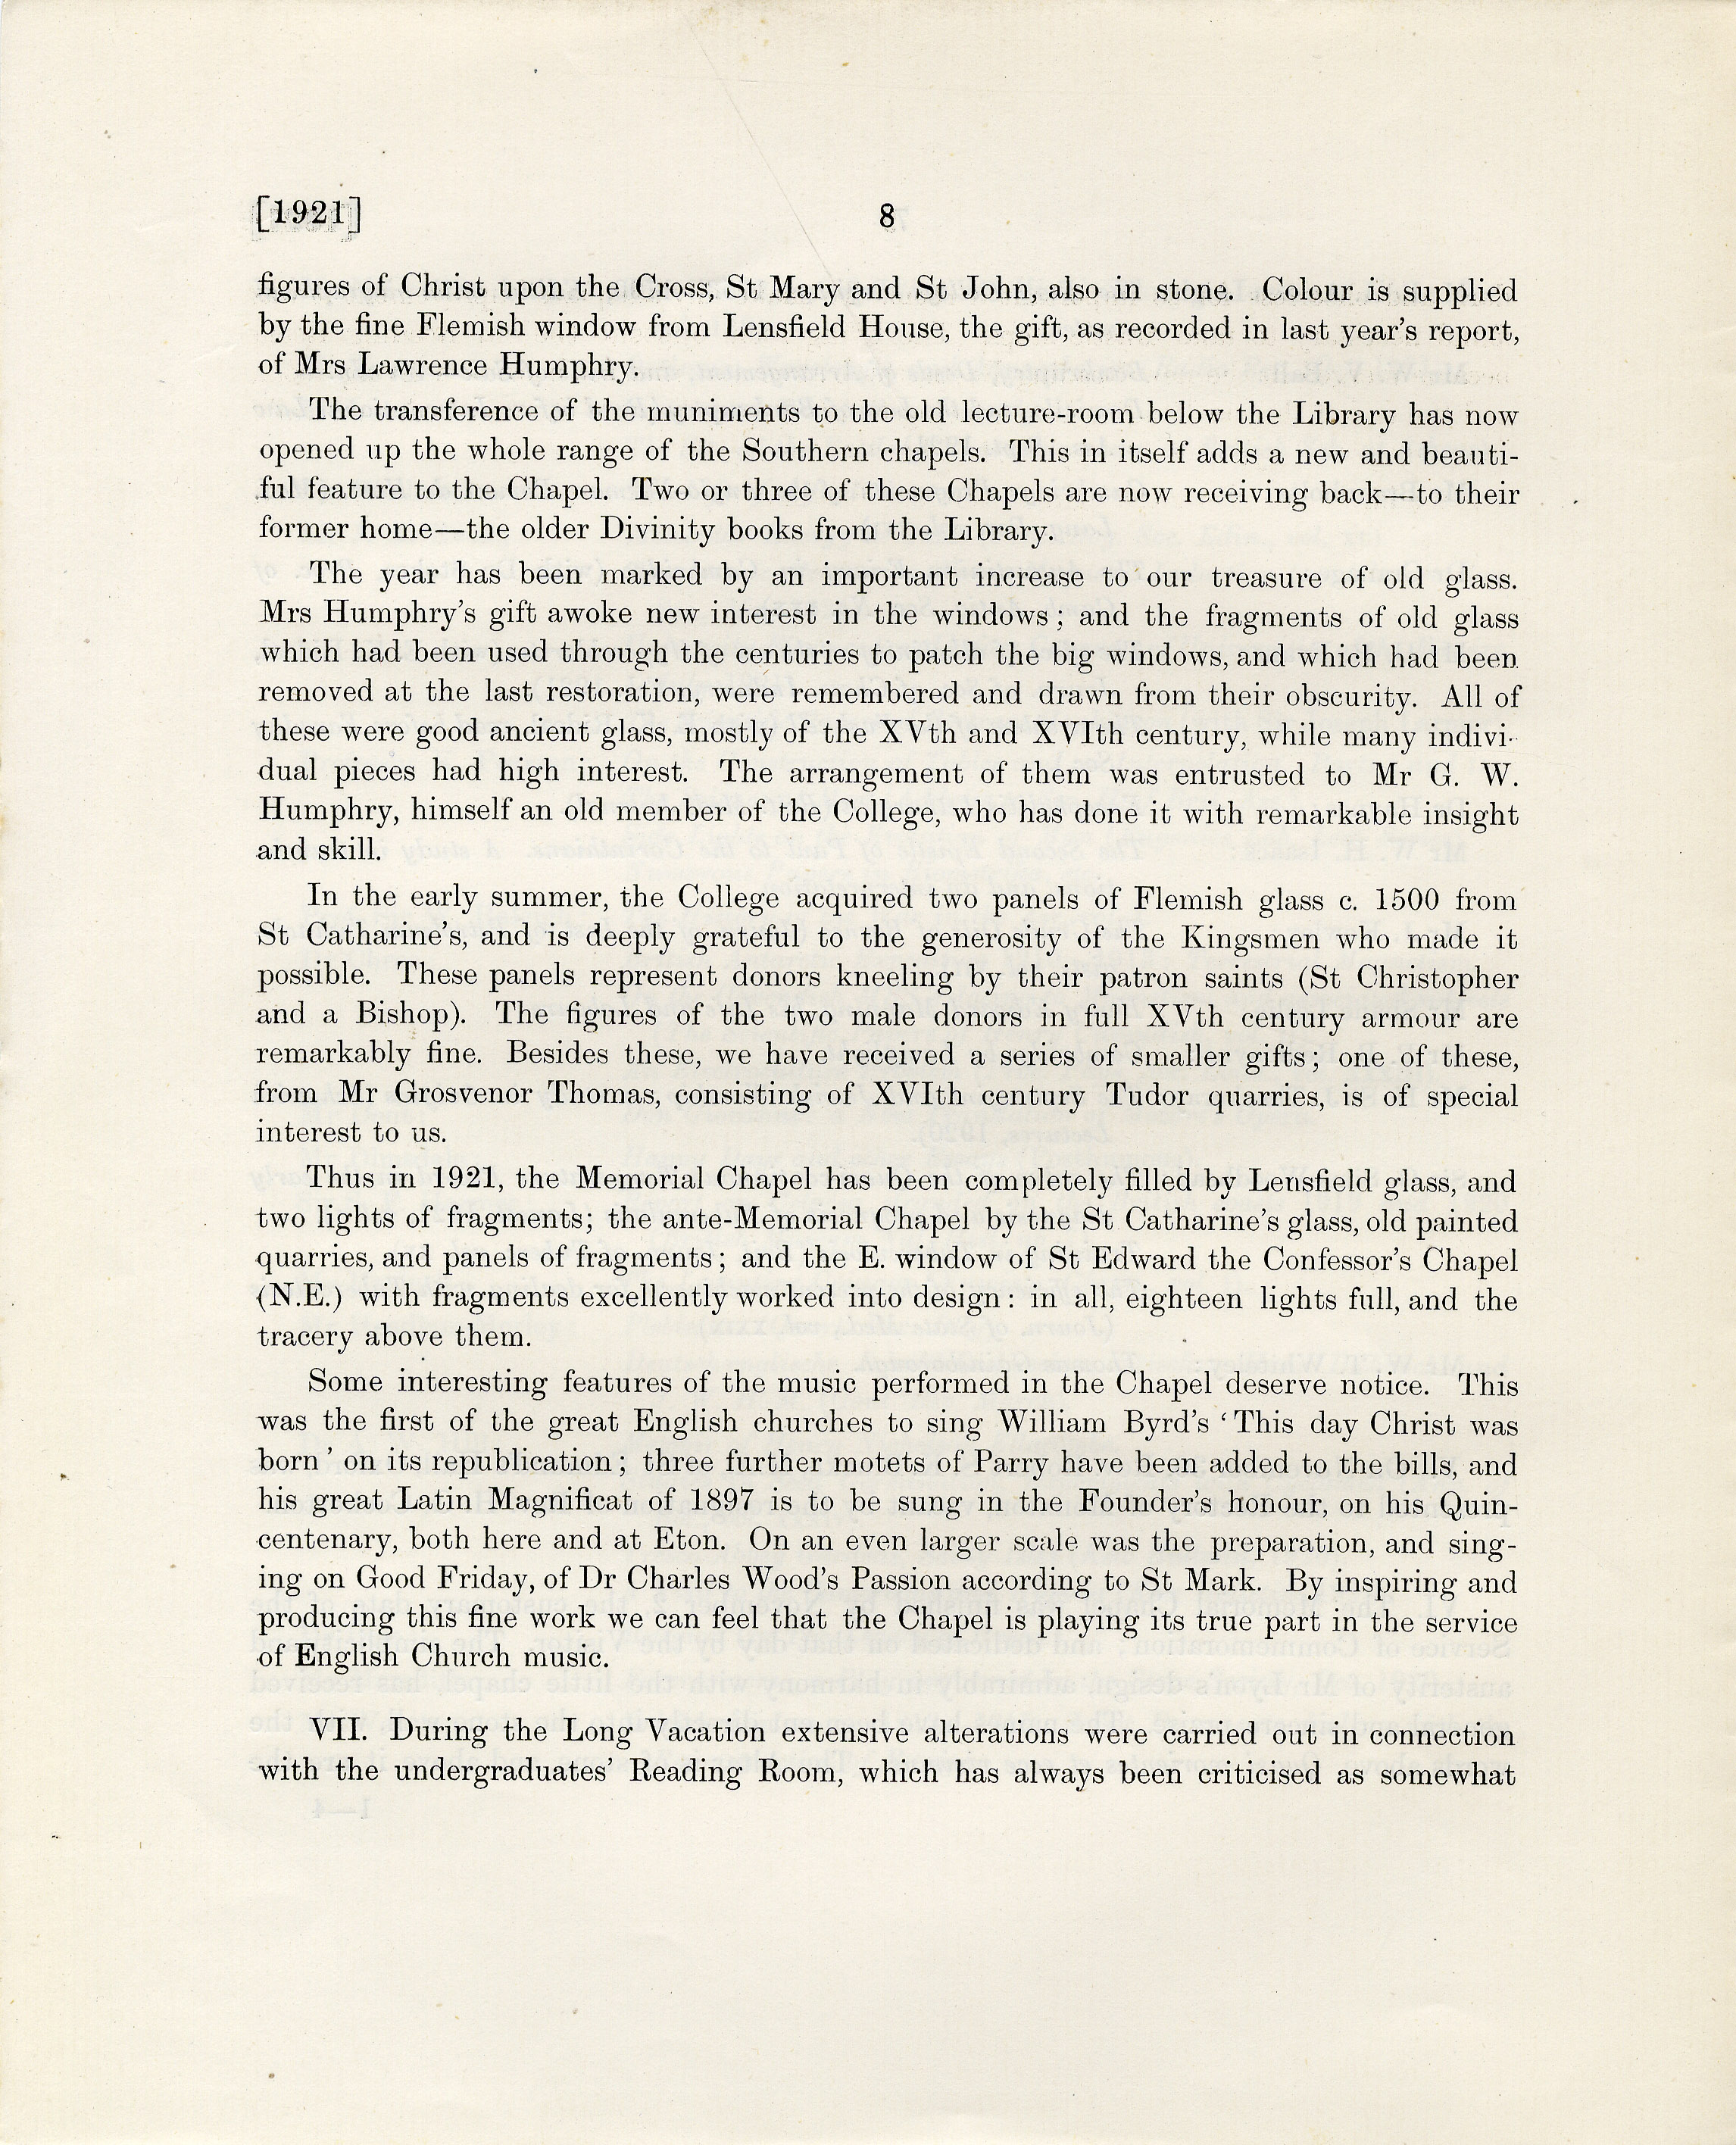 Opening of the Memorial Chapel, Annual Report of 1921 (p.8)